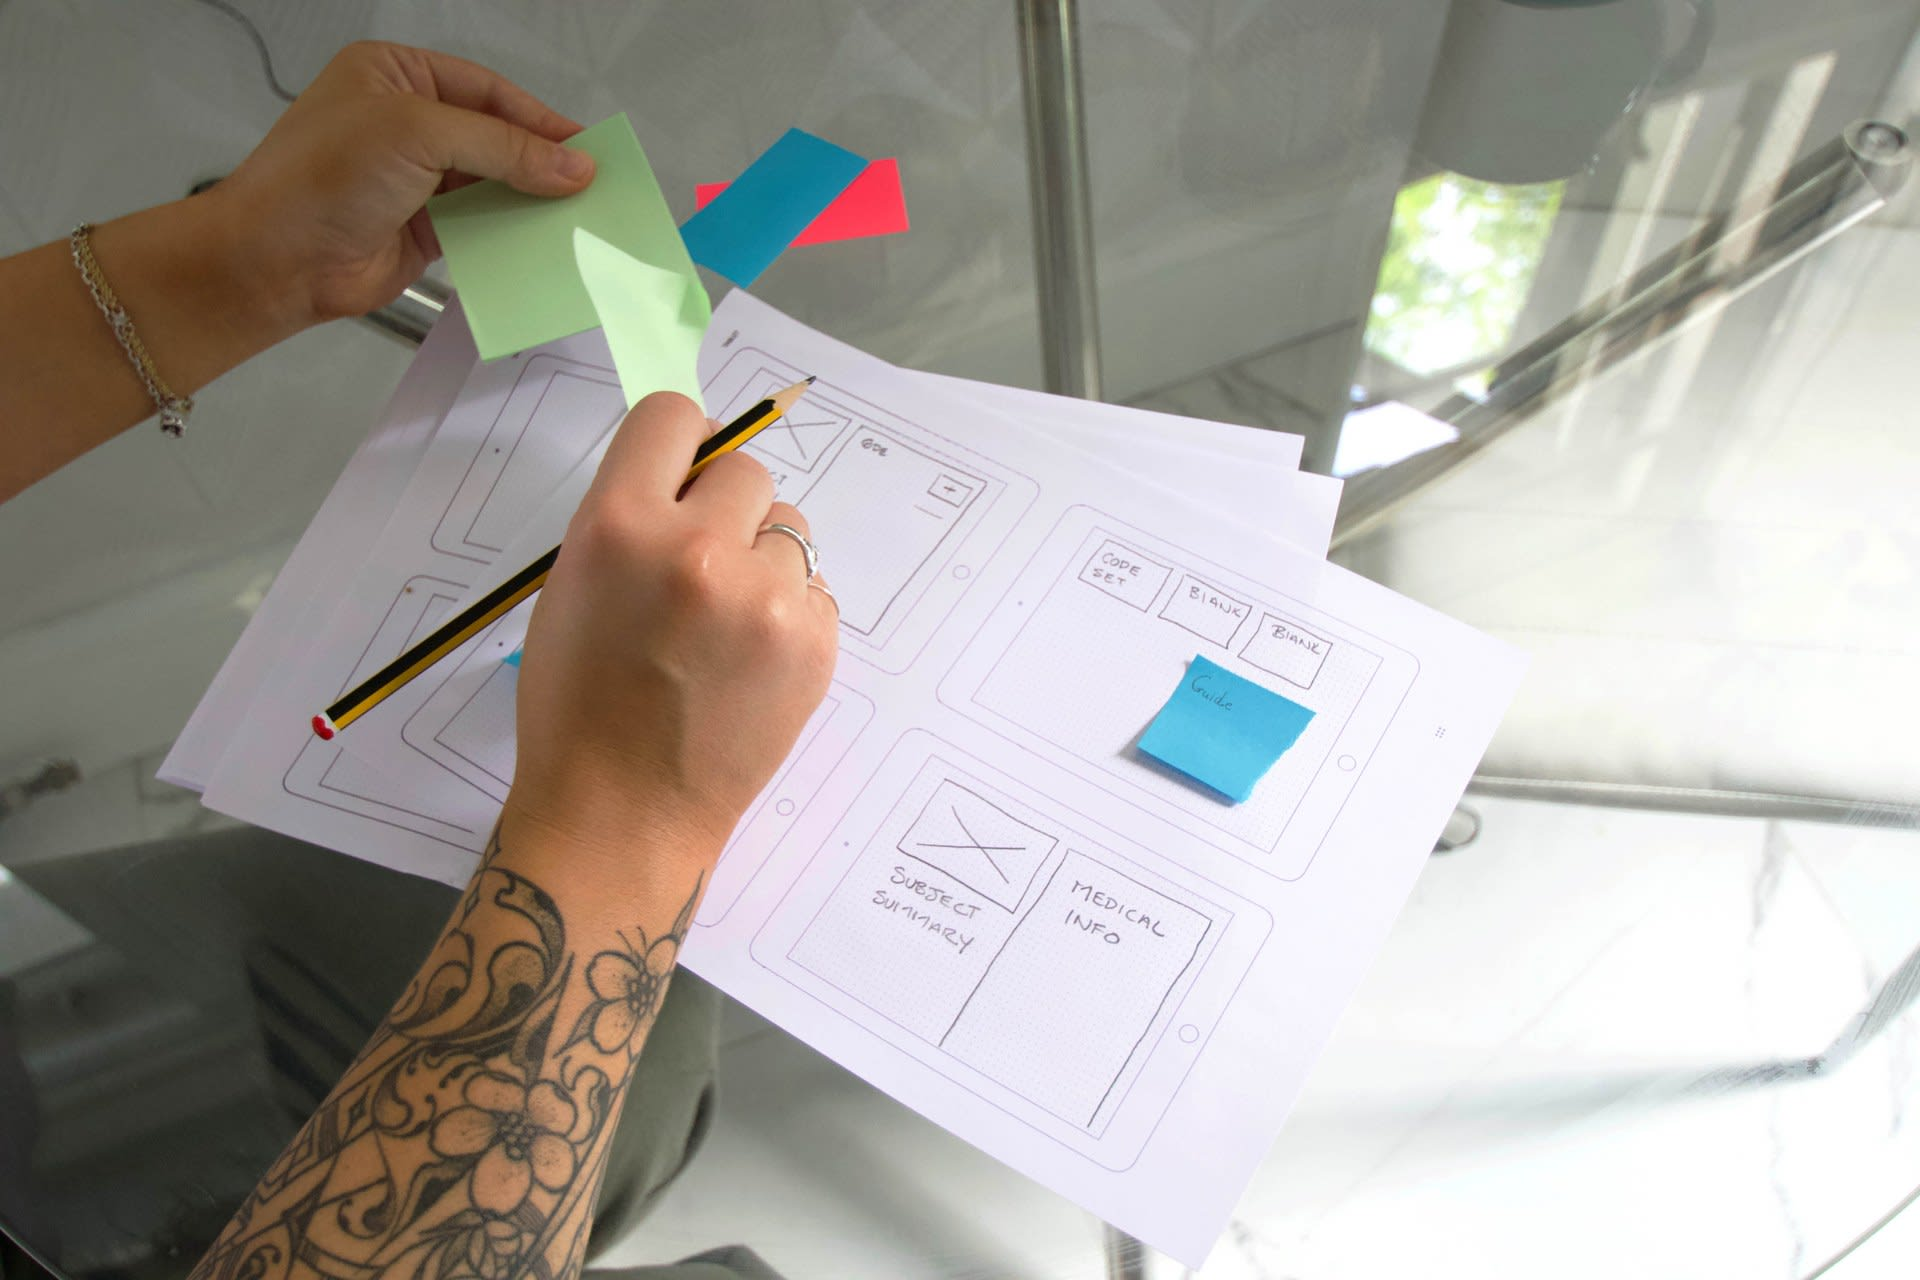 User Experience Research